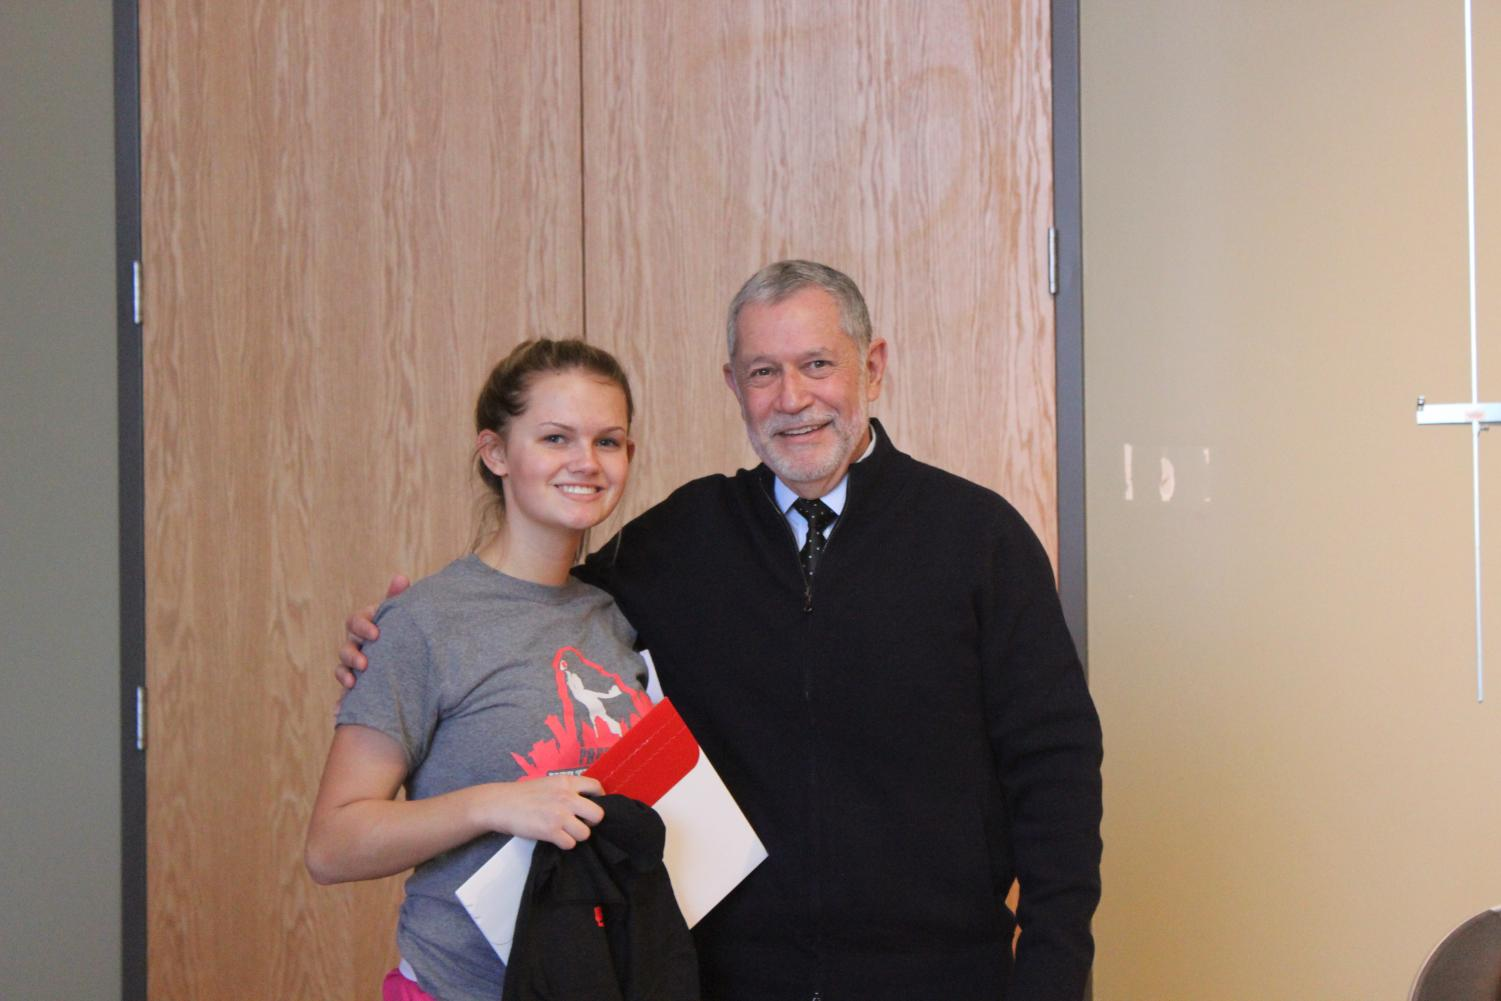 Dr. Carlos Vargas-Aburto, president of SEMO, poses with senior Cassidy Schatz.  Dr. Vargas presented Schatz with an admission letter to SEMO when he spoke to students on Dec. 1.